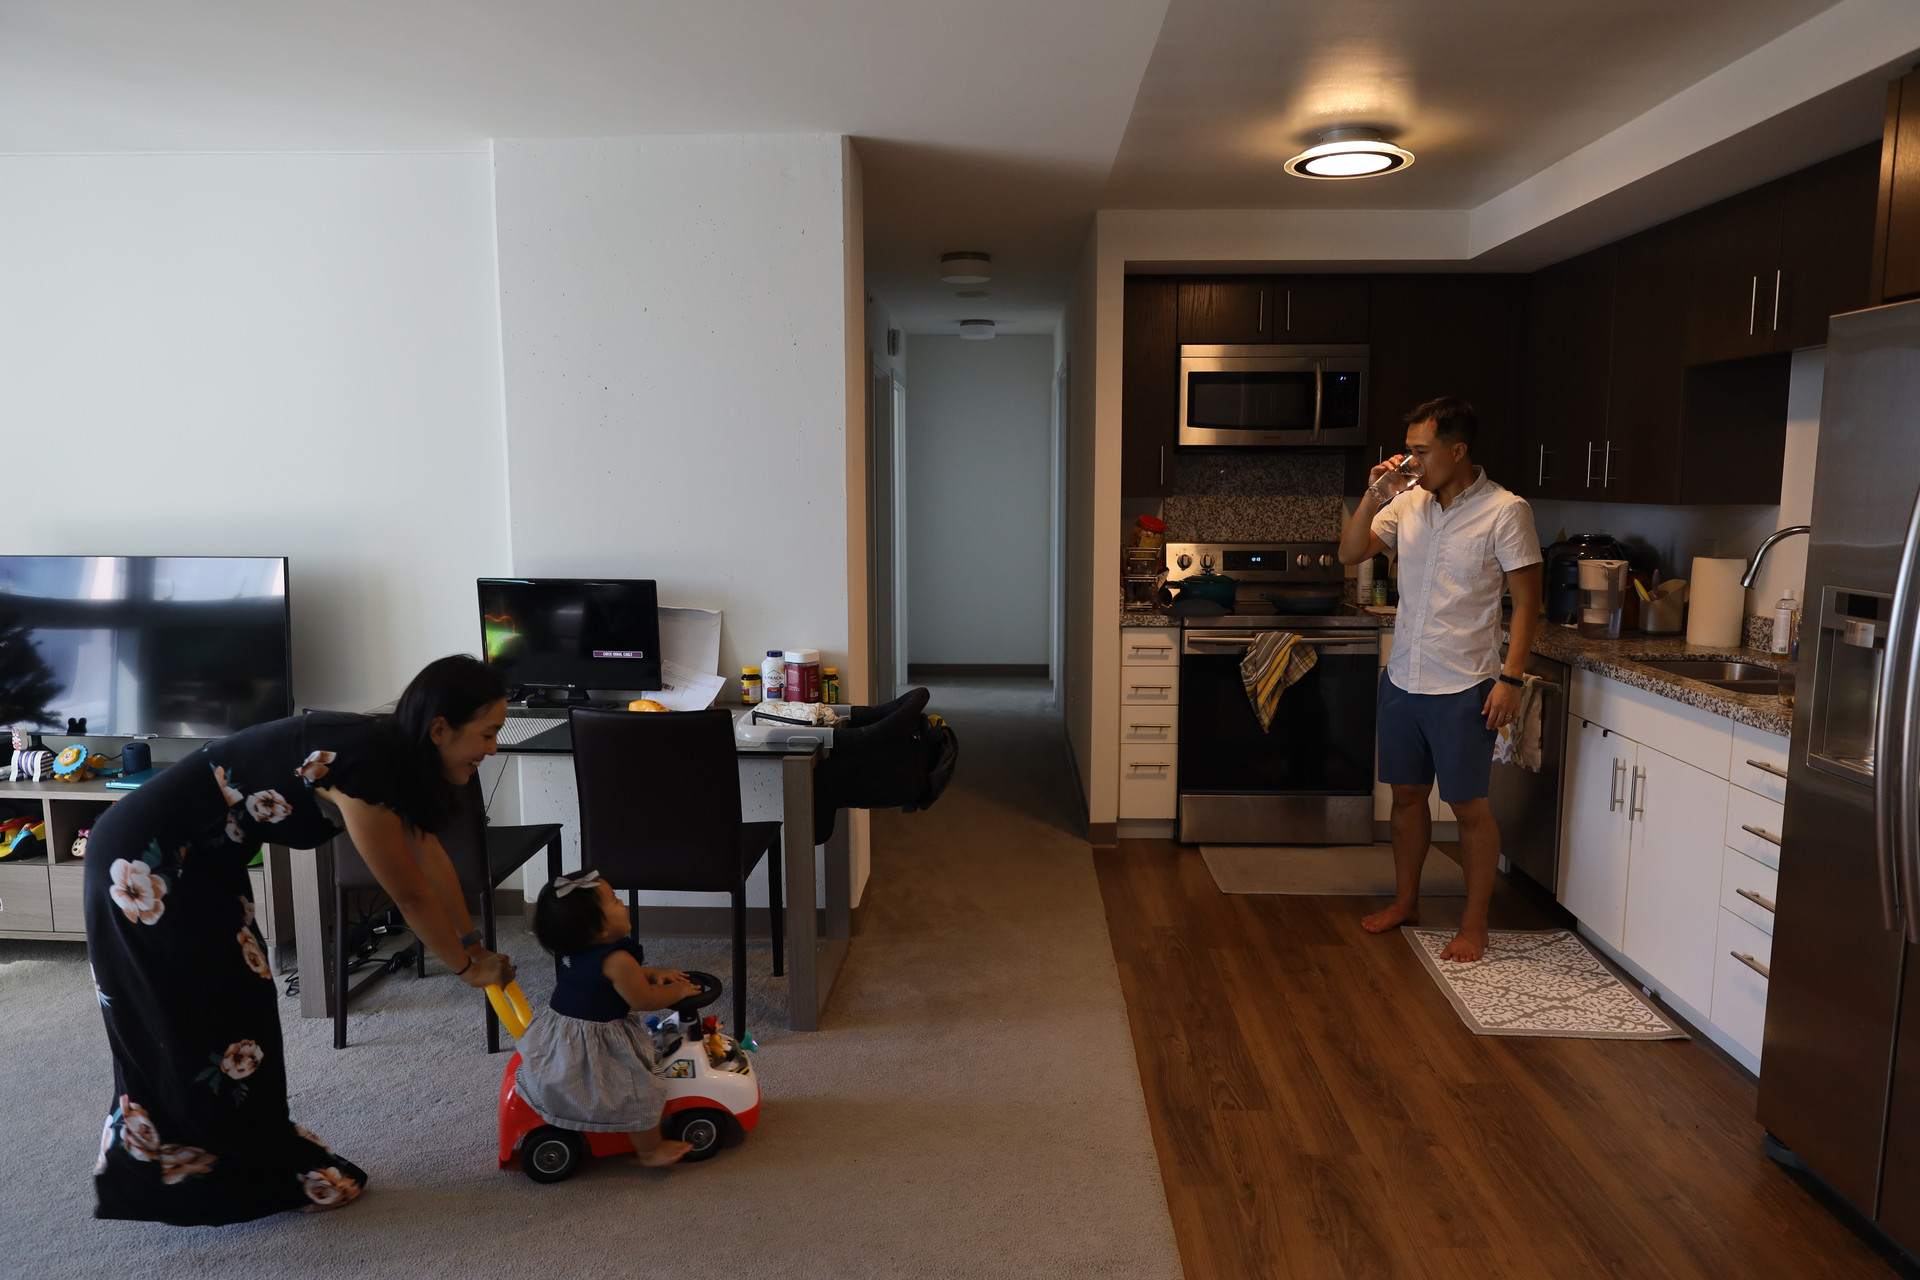 The Matsui family in their Kaka'ako condominium on Saturday, December 12, 2020. They have been living here for there past six months. Following the closure of Bay Area due the pandemic, the family has decided to work remotely from Hawai'i without any possible return to San Francisco.